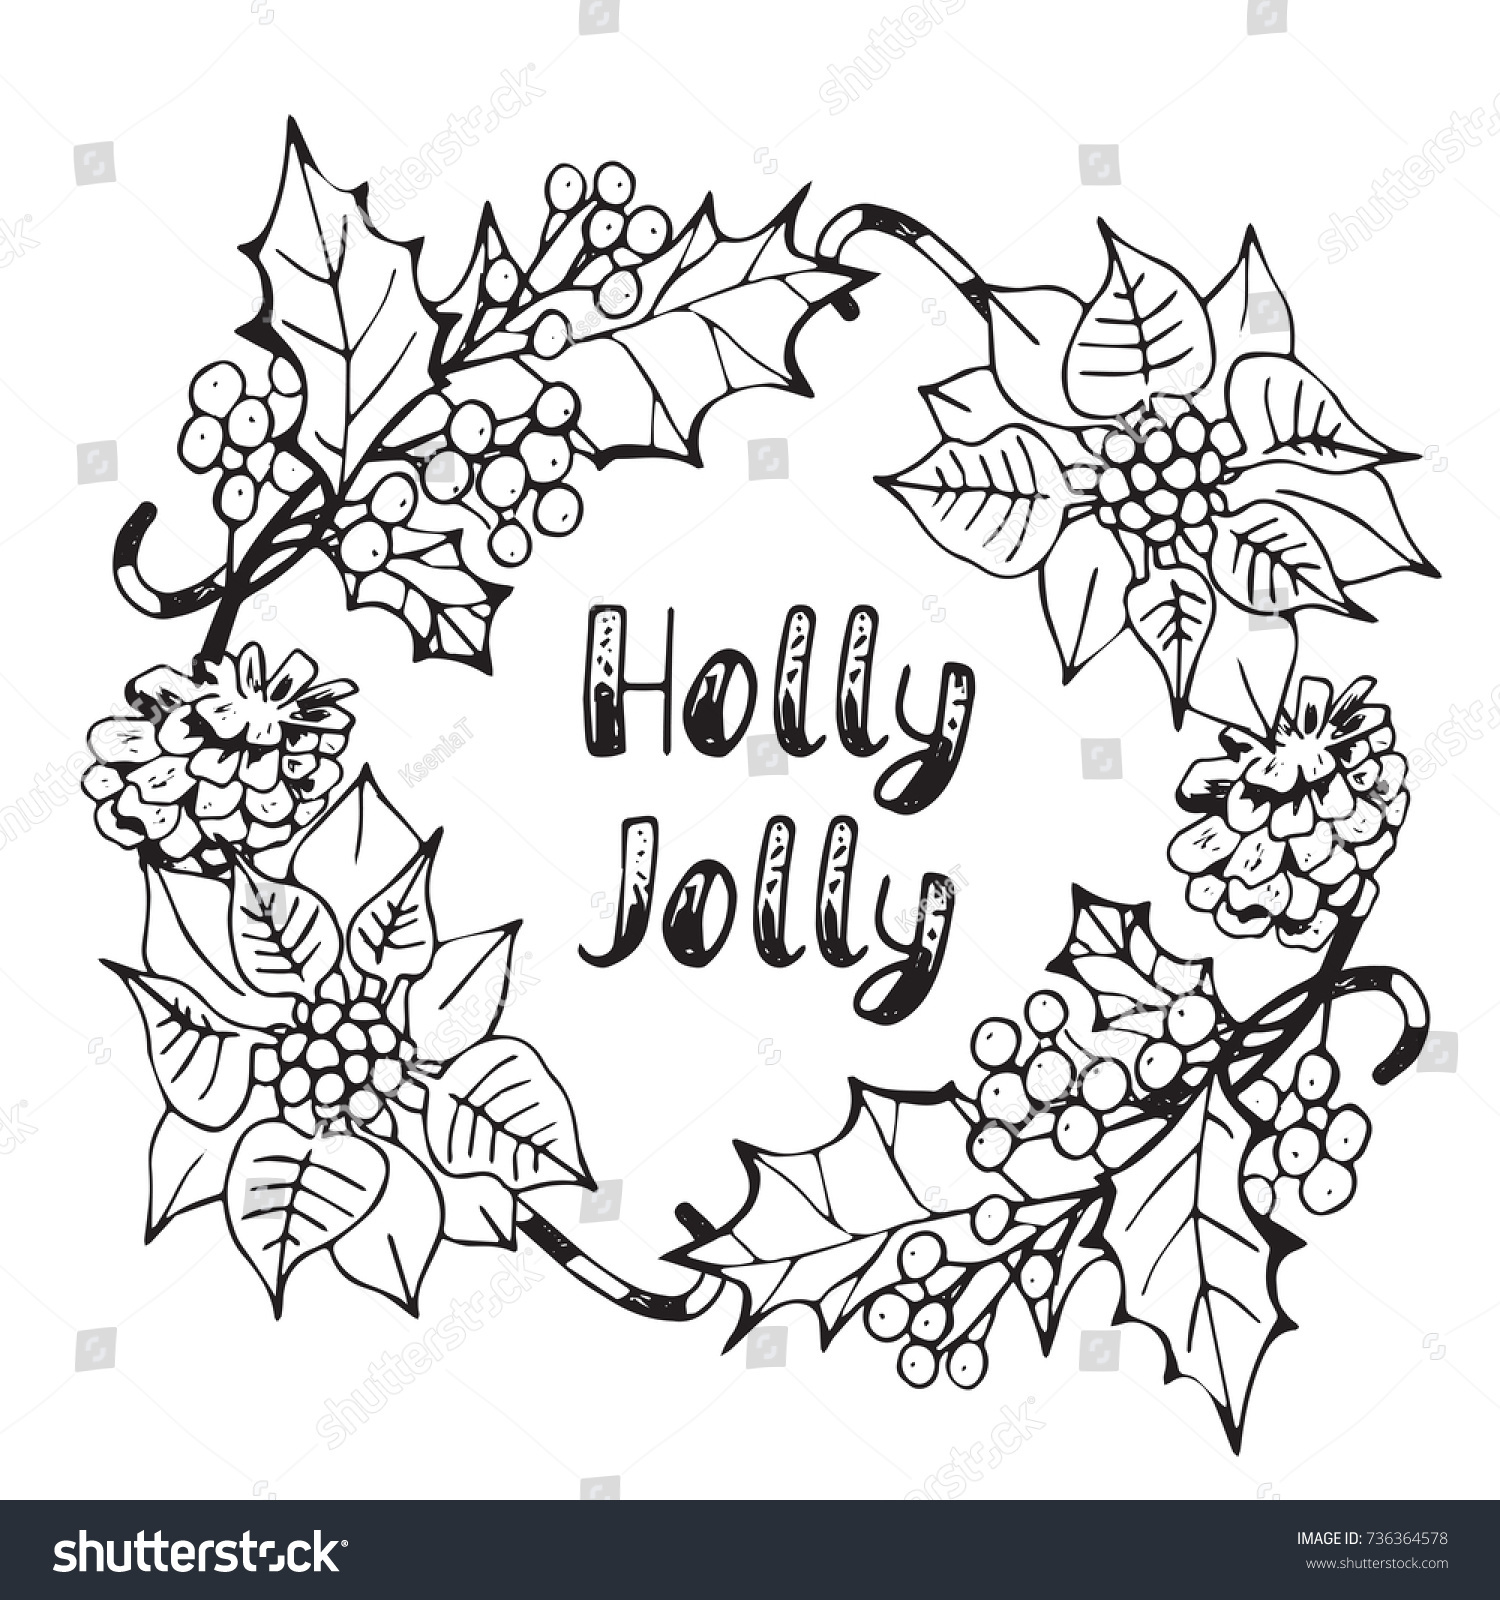 Hand Drawn Winter Poster With Natural Wreath Made Of Berries Leaves And Lettering Holly